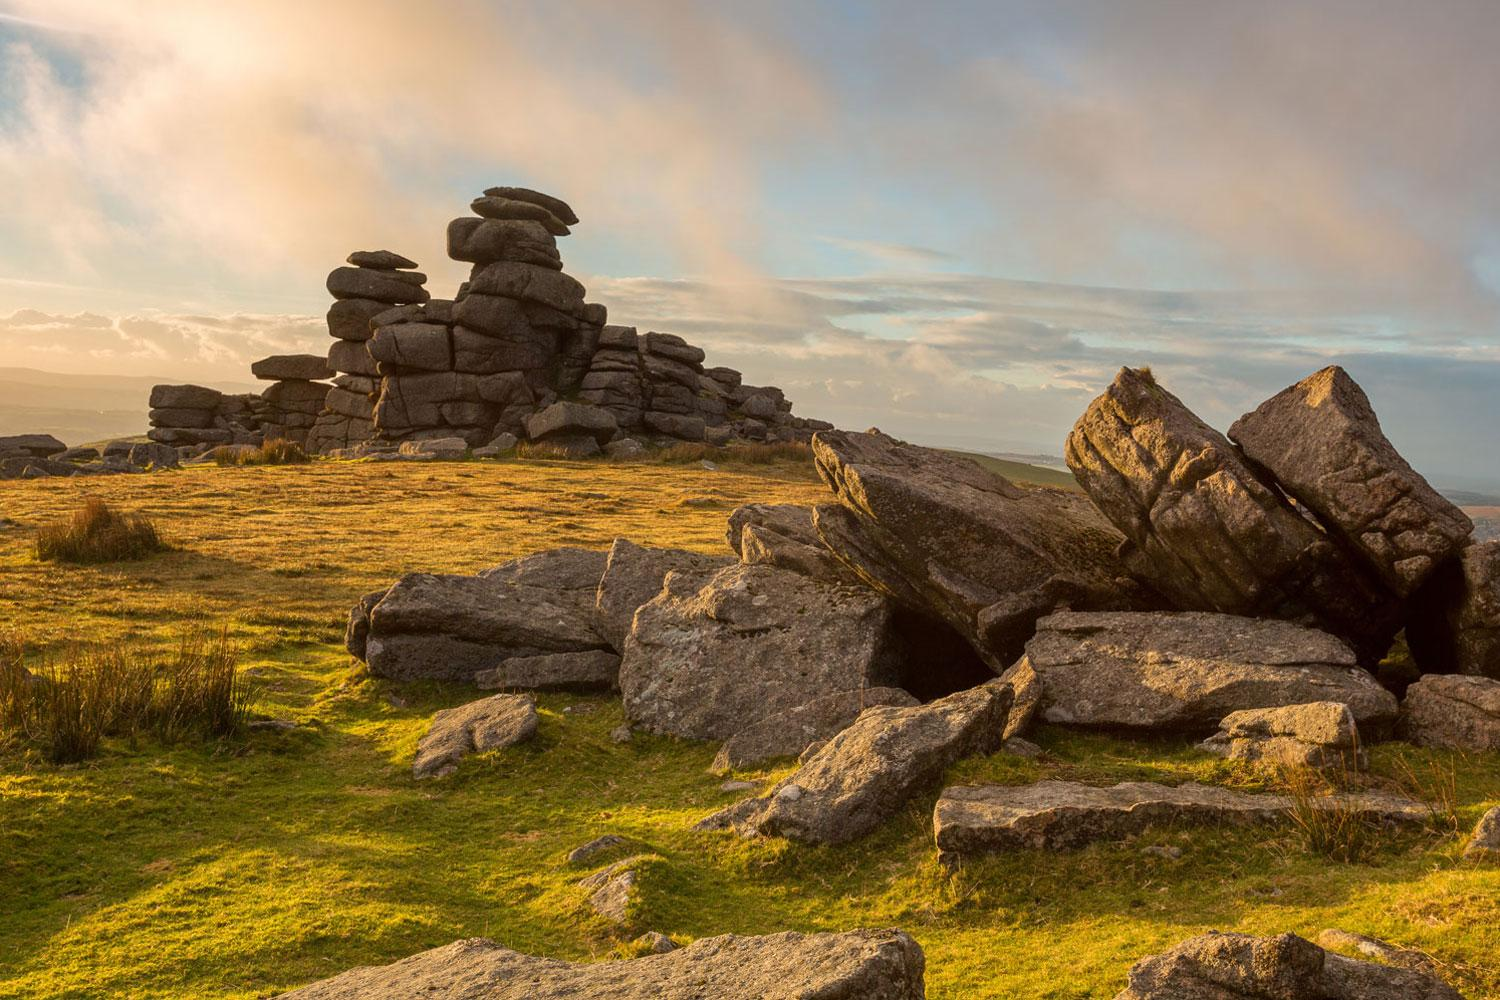 Tors and moors, the stunning landscapes of Dartmoor